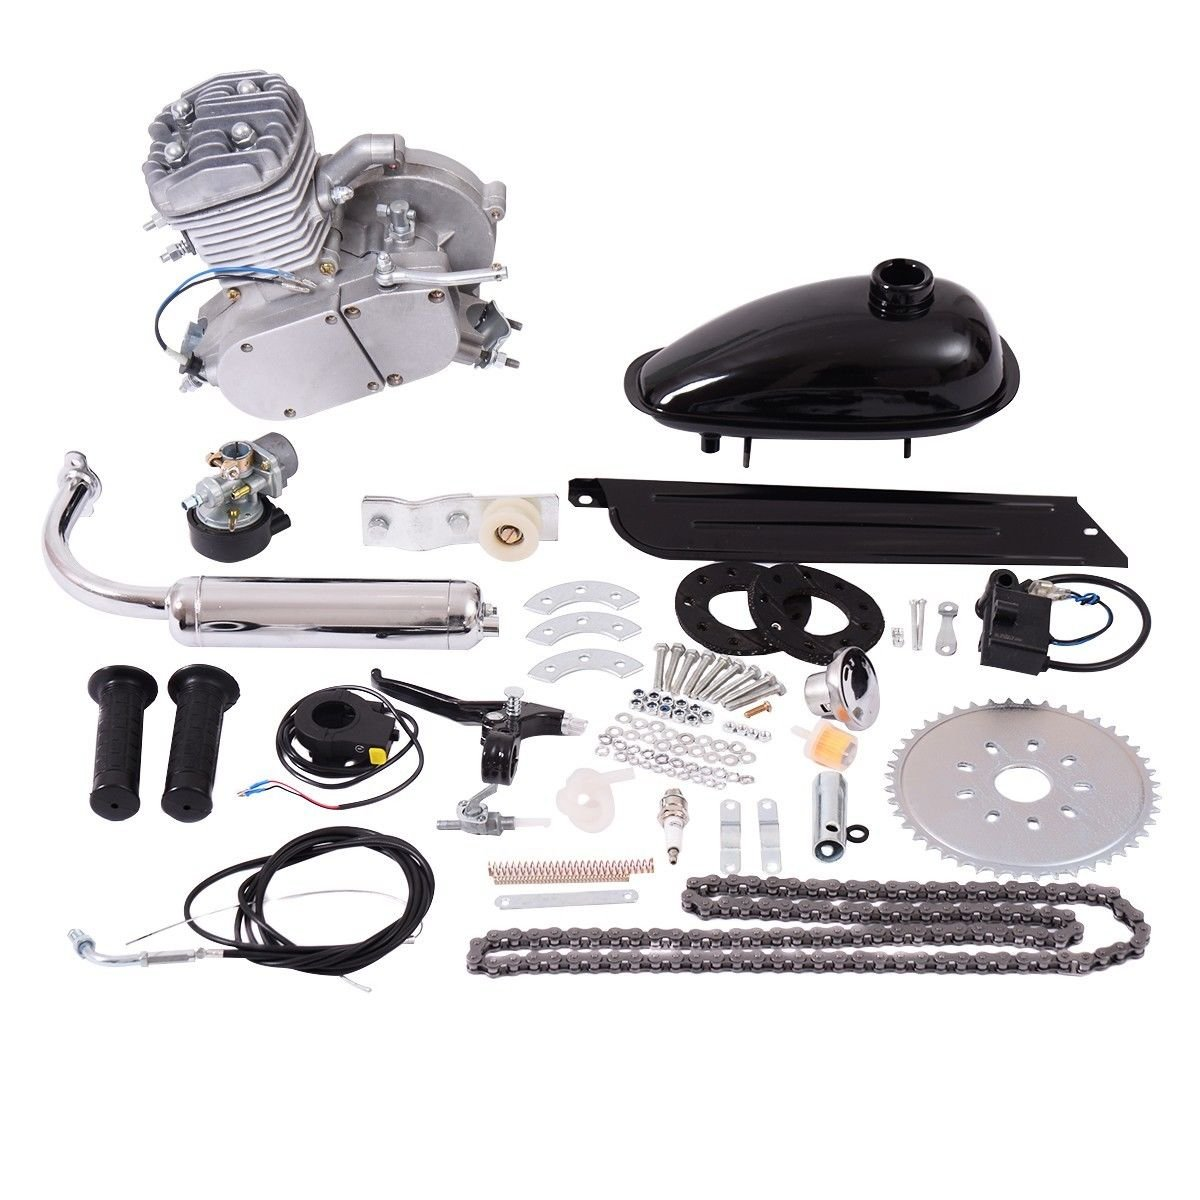 New 80cc 2-Stroke Bicycle Gasoline Engine Motor Kit DIY Motorized Bike Silver